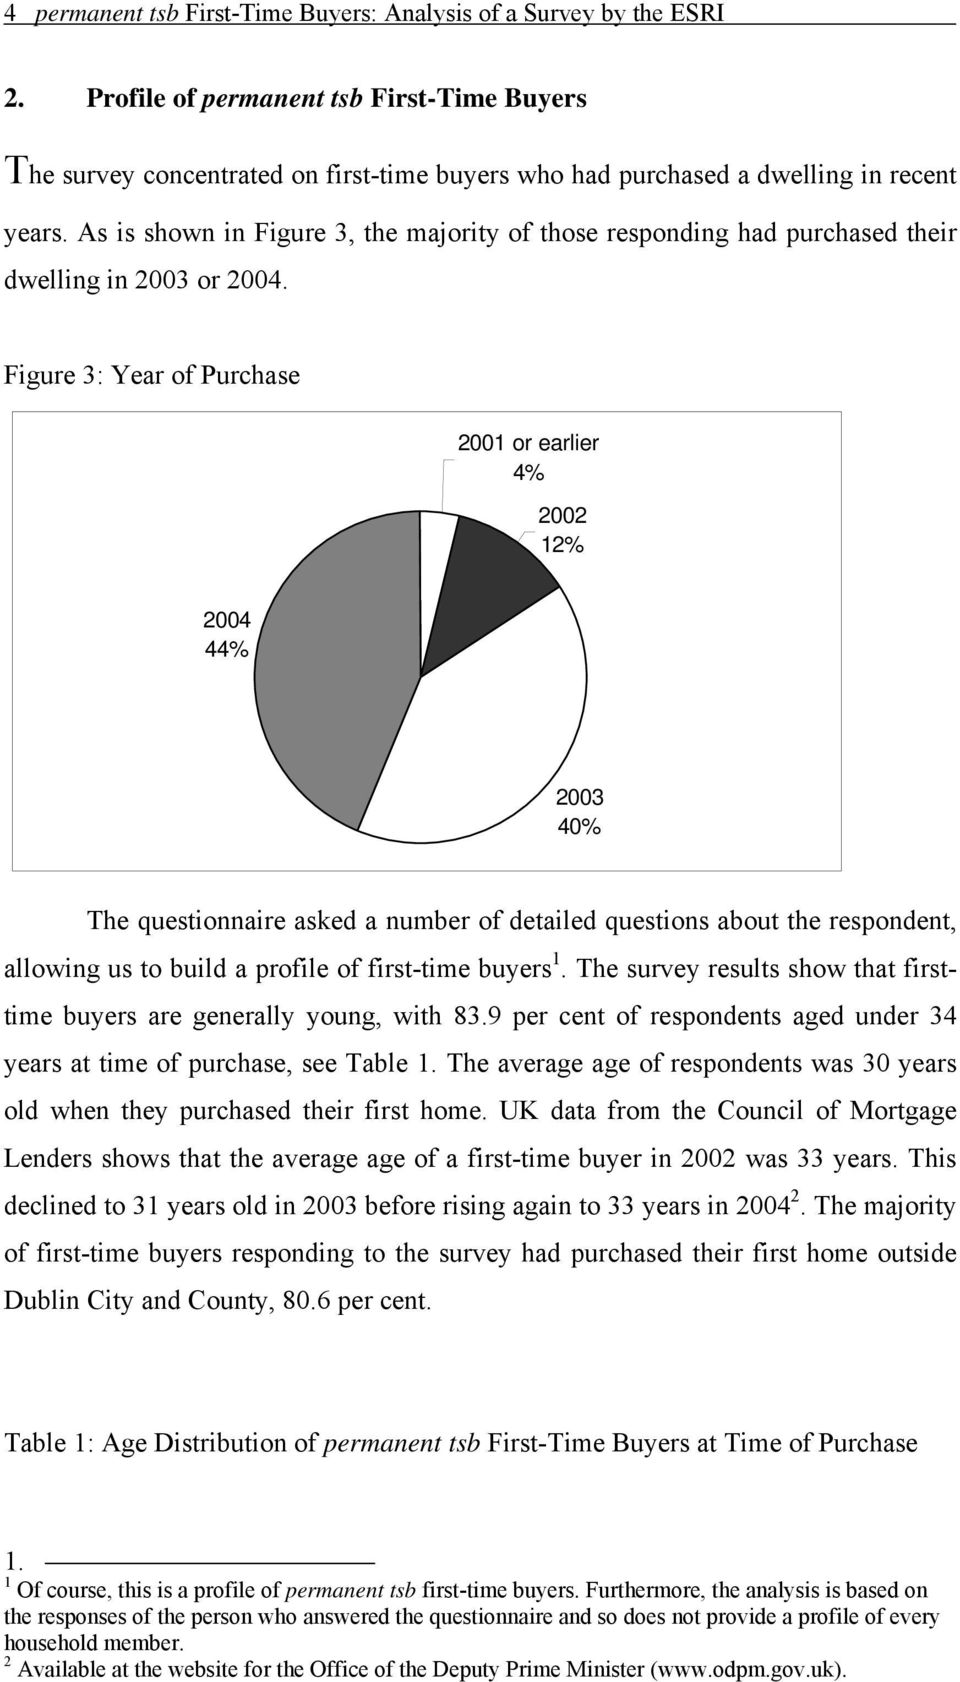 As is shown in Figure 3, the majority of those responding had purchased their dwelling in 2003 or 2004.